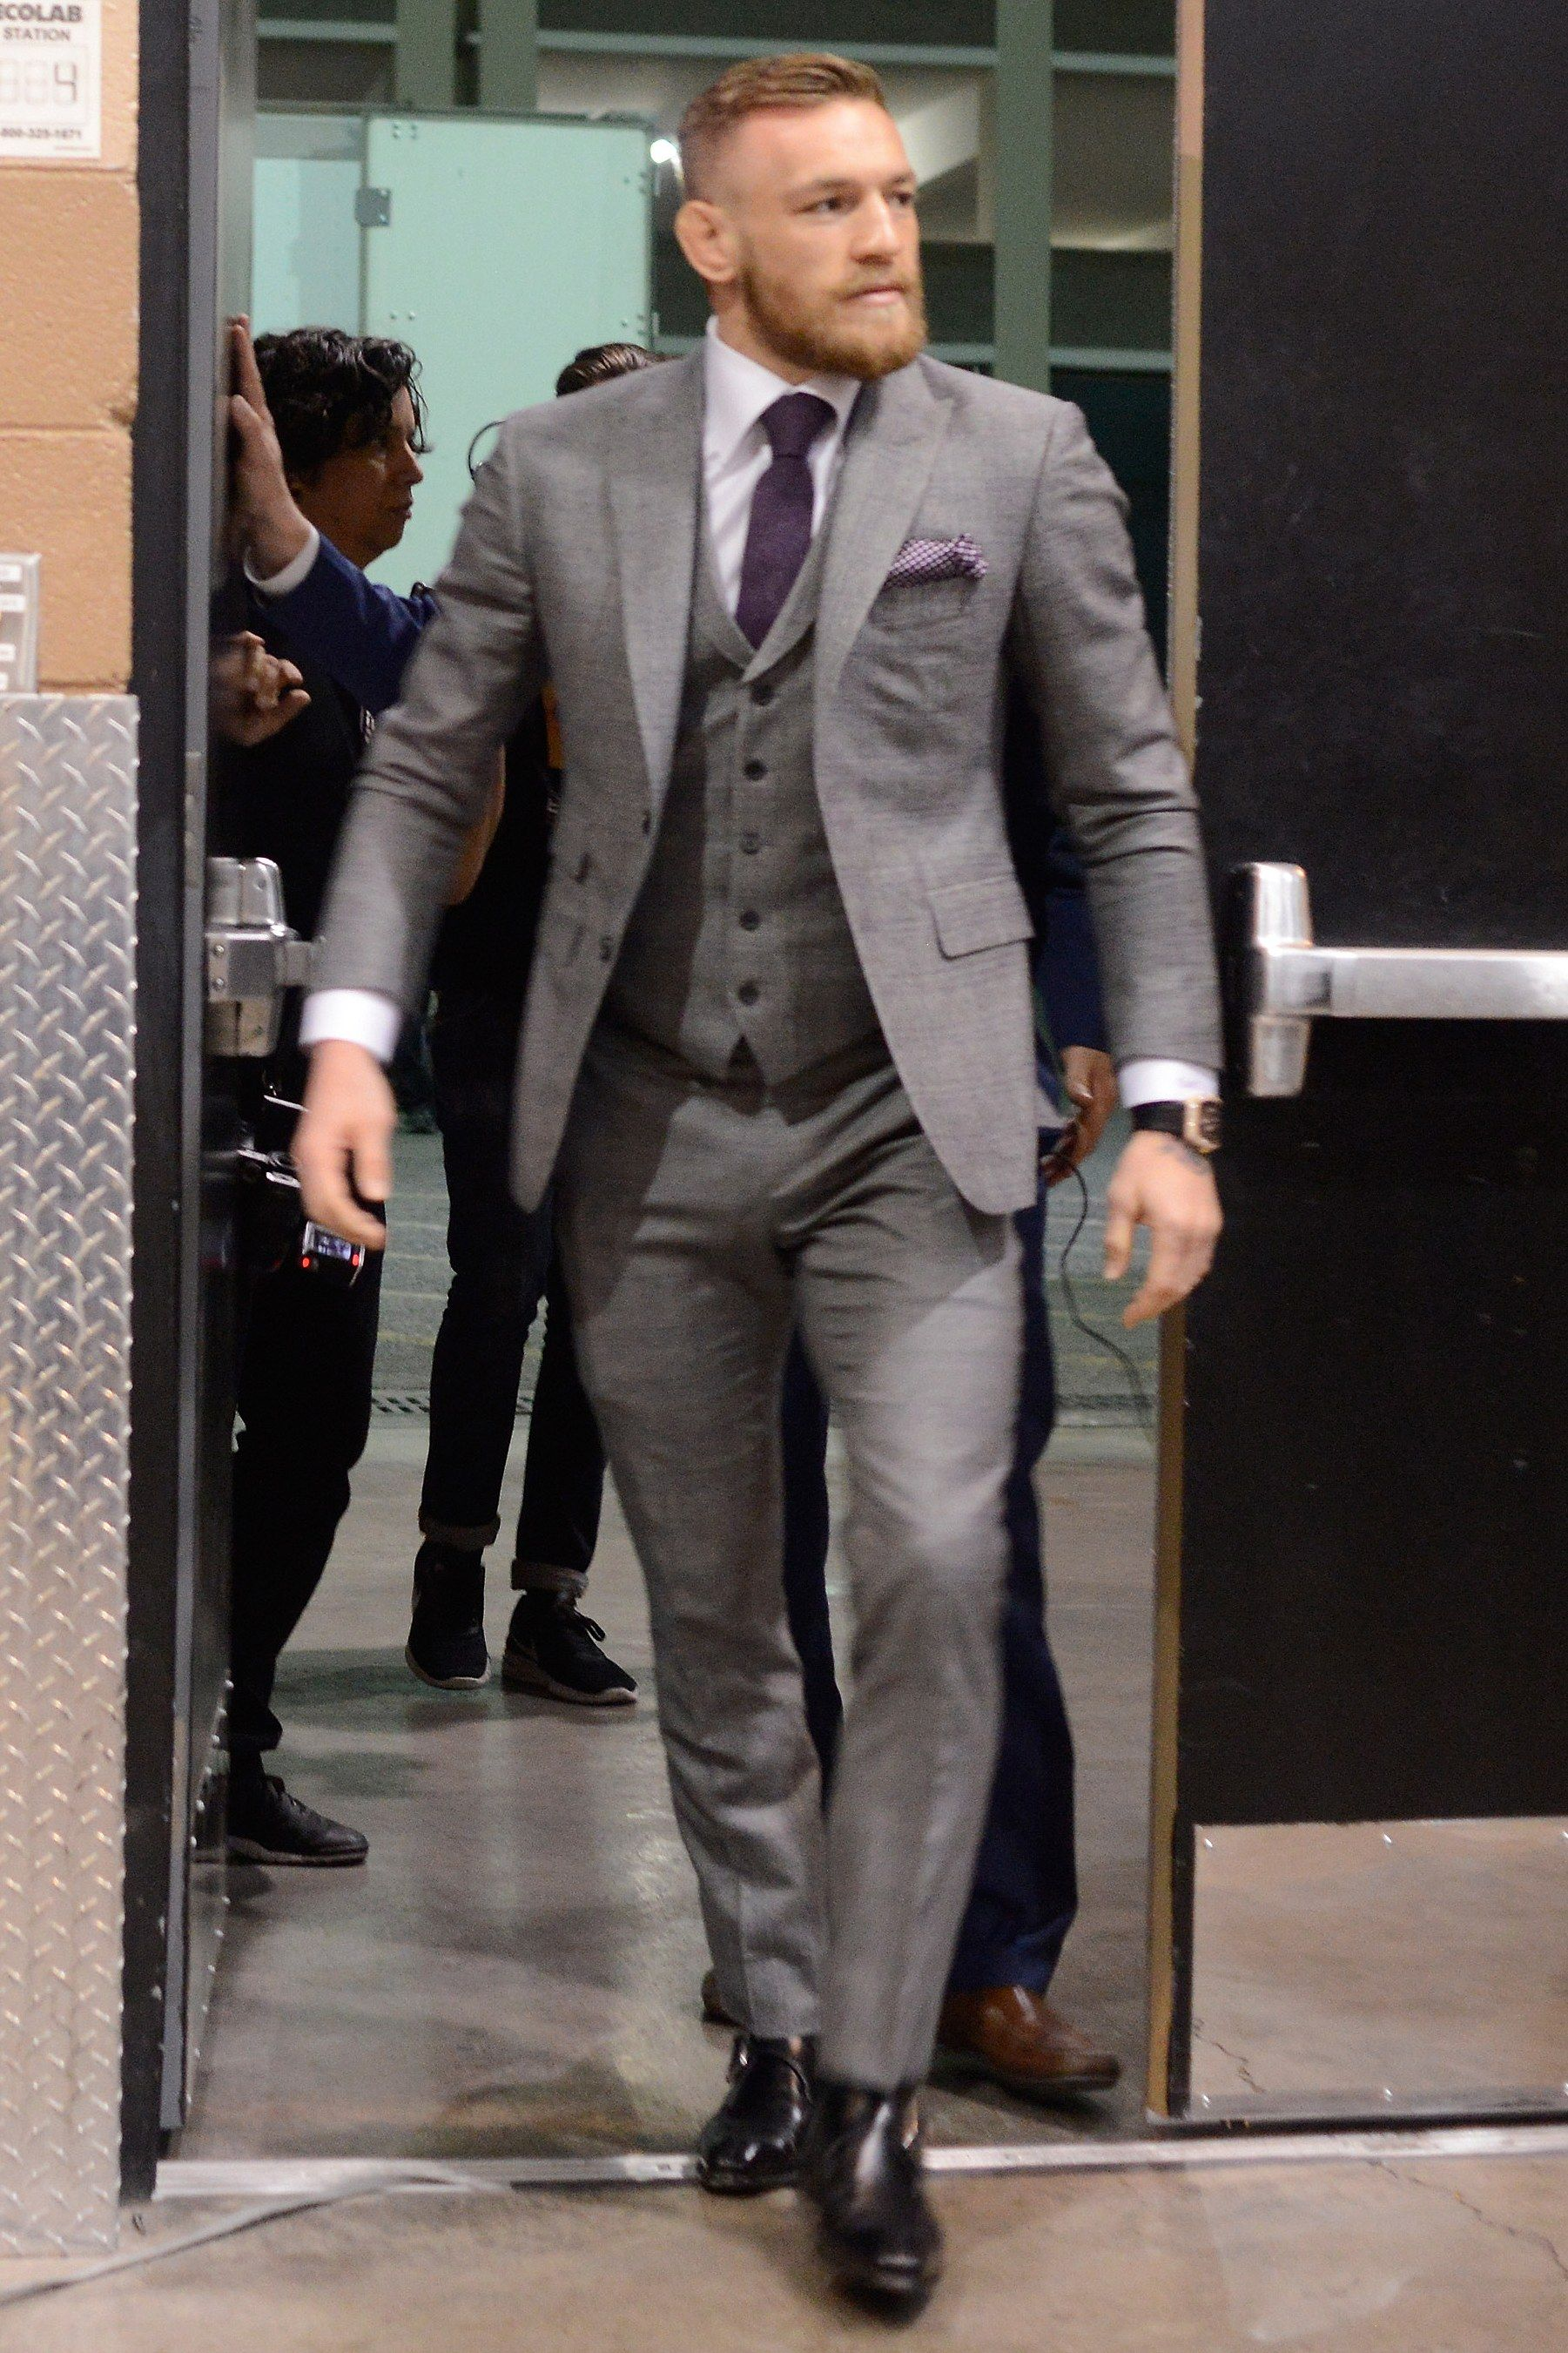 7fce9b41f7ef7e Conor McGregor's Boldest, Loudest, and Most Badass Fits | Men's ...